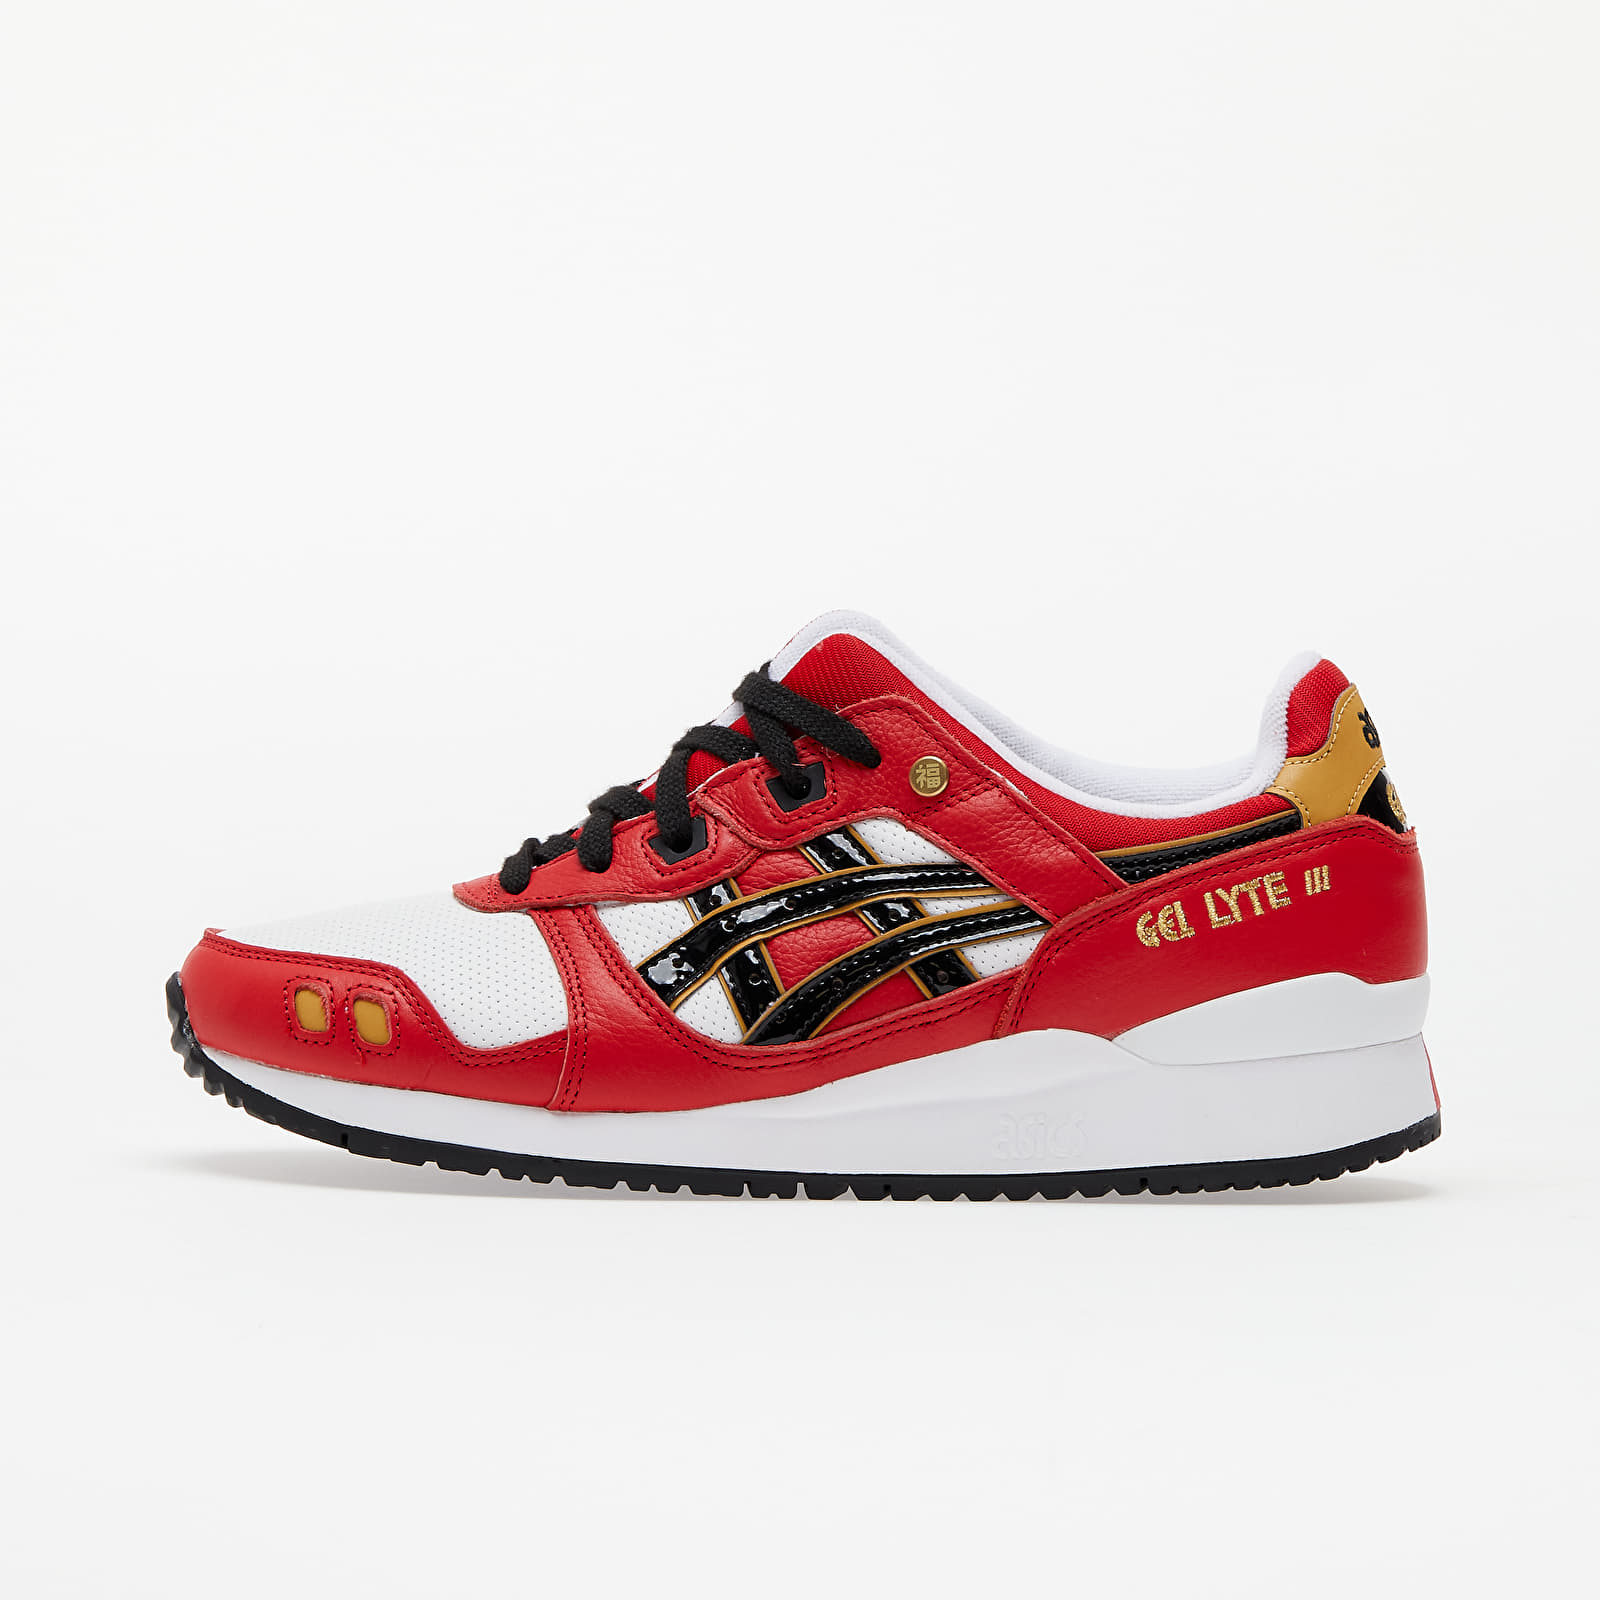 Asics Gel-Lyte III OG Classic Red/ Black EUR 42.5